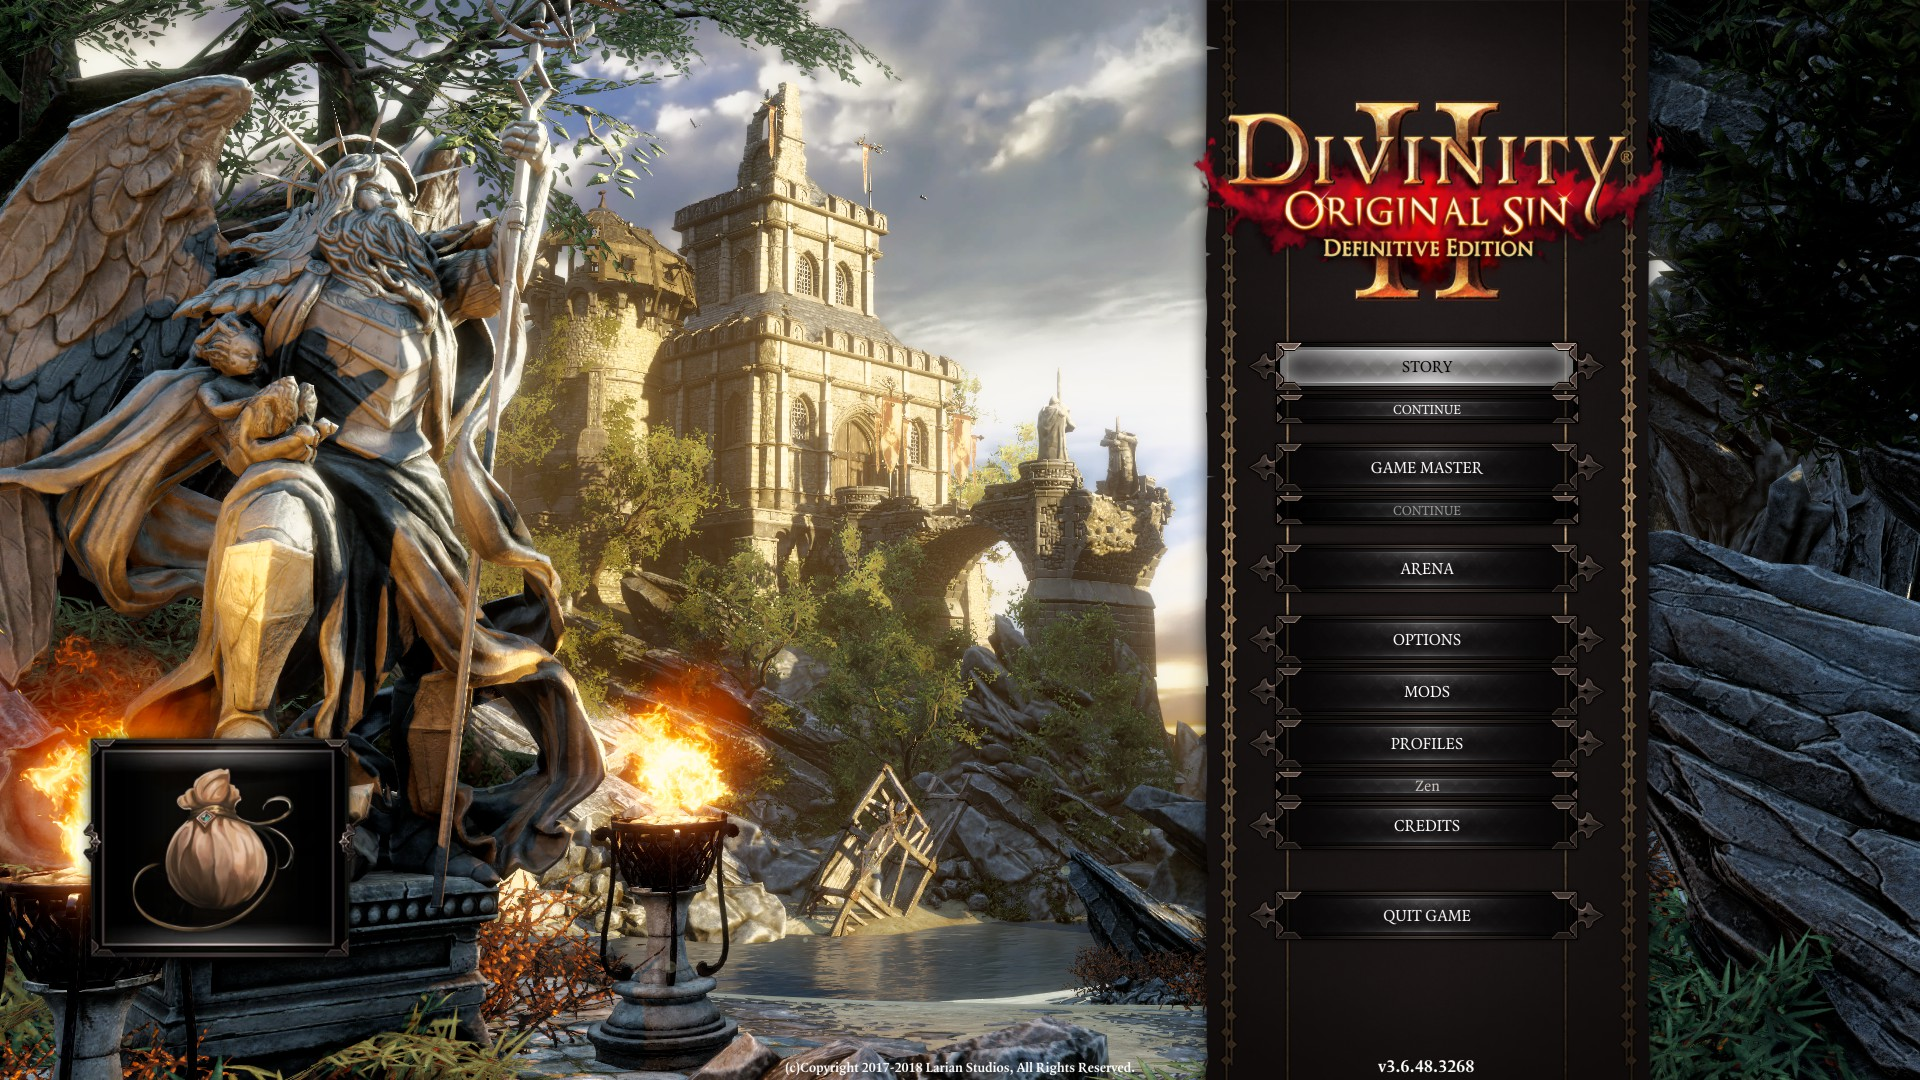 Divinity Original Sin 2 On Switch Has A Major Advantage Over Its